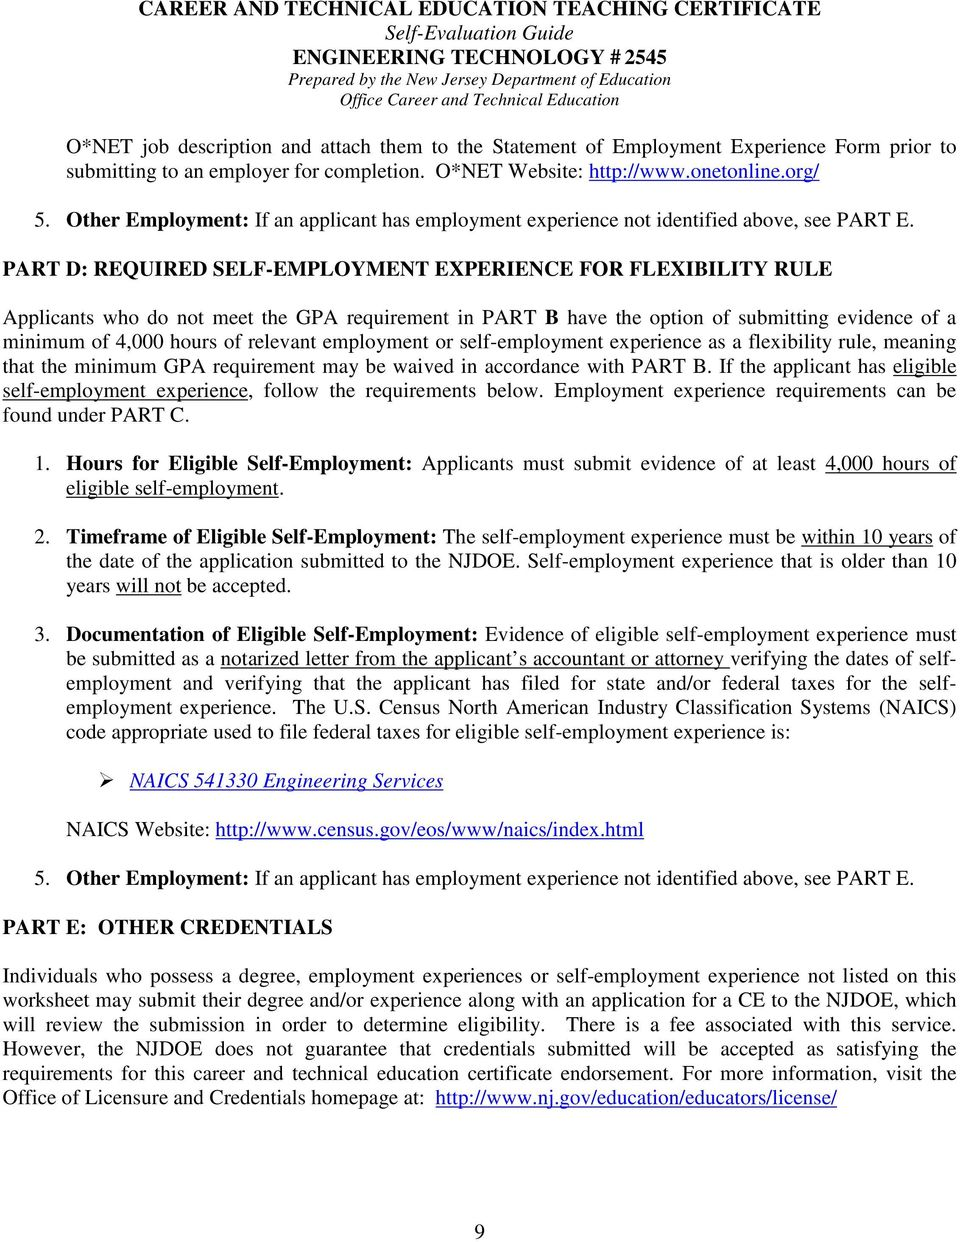 PART D: REQUIRED SELF-EMPLOYMENT EXPERIENCE FOR FLEXIBILITY RULE Applicants who do not meet the GPA requirement in PART B have the option of submitting evidence of a minimum of 4,000 hours of